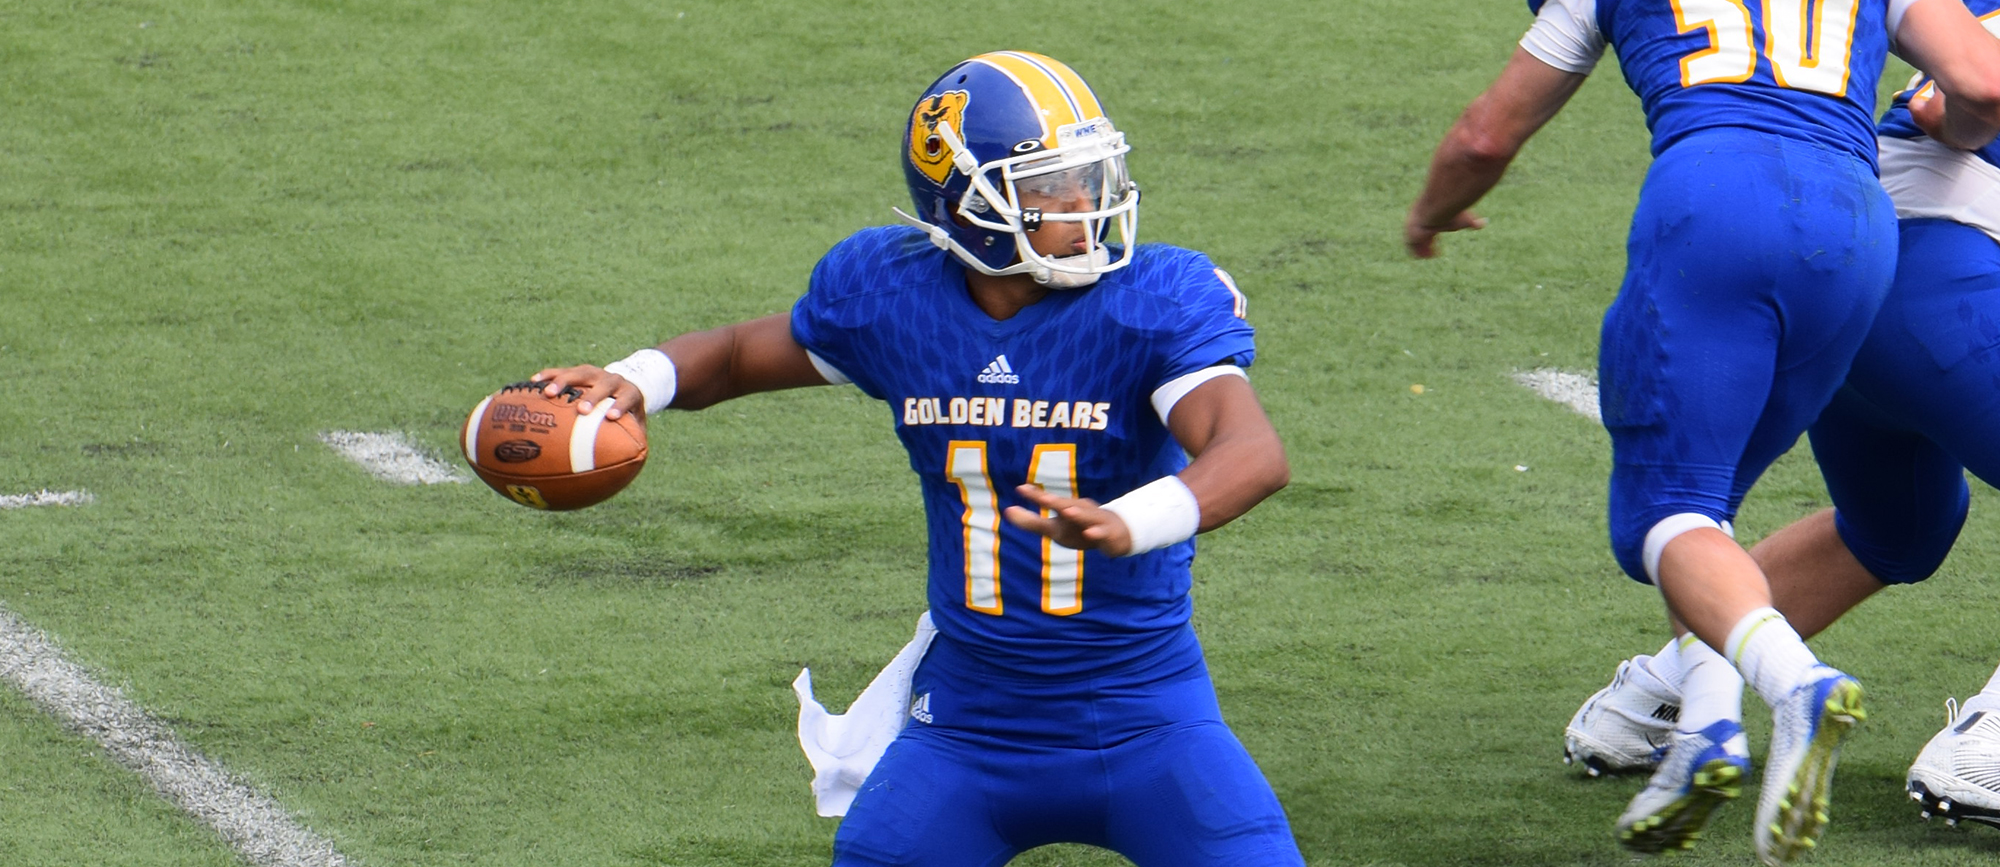 Western New England Rolls to 45-0 Shutout Victory at Becker